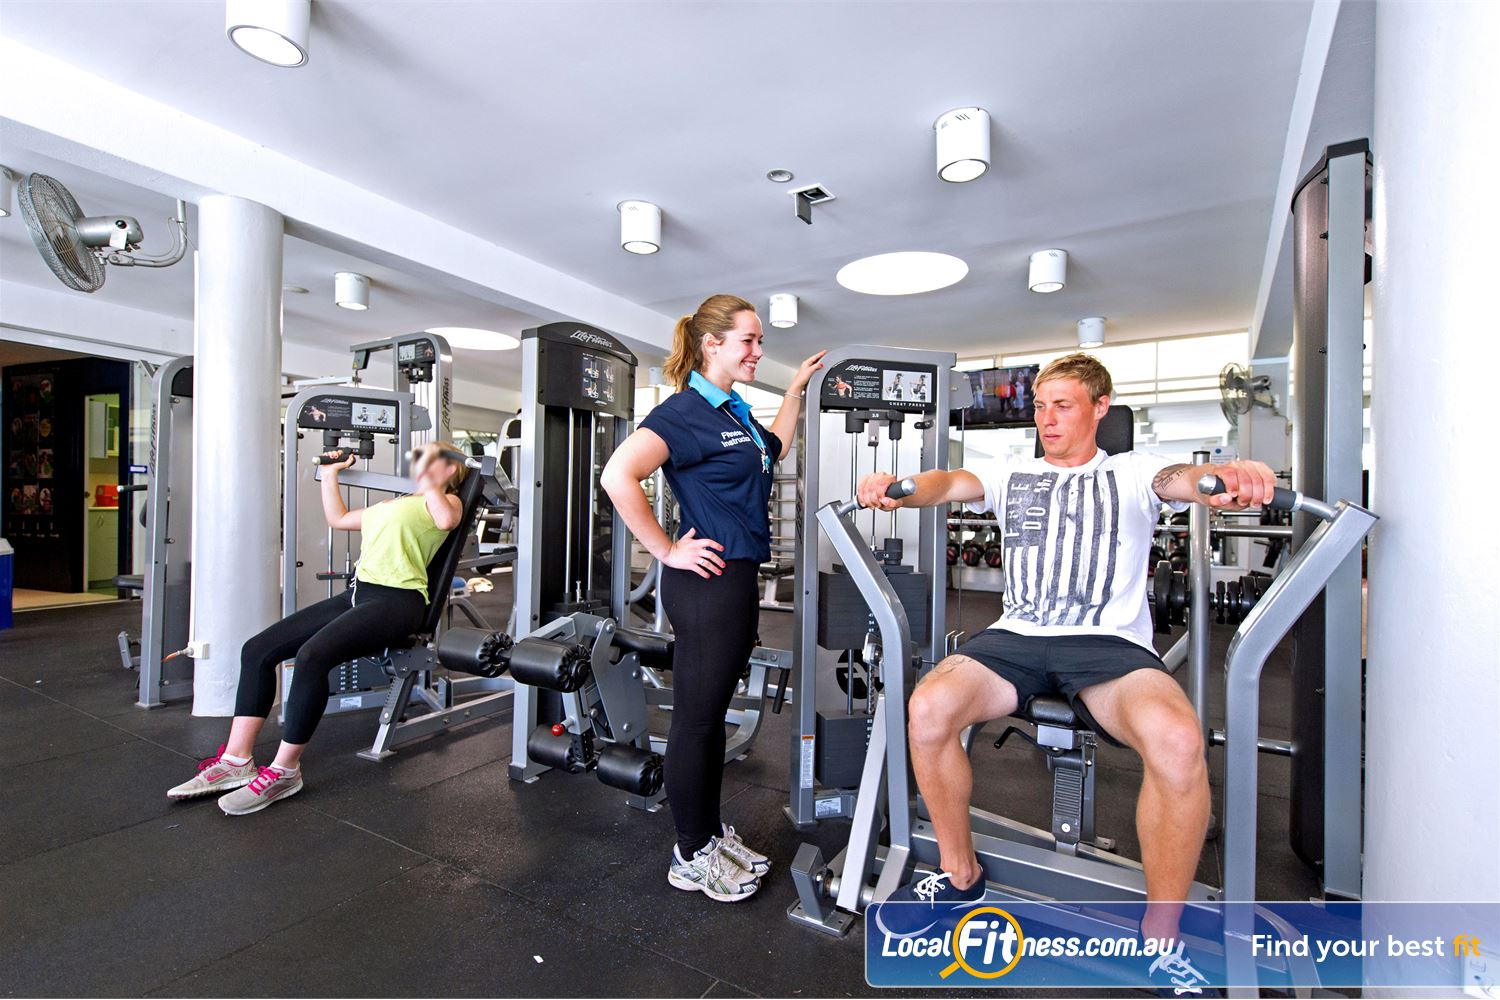 Victoria Park Pool Near Summer Hill Camperdown gym instructors will get you on your weight-loss journey.